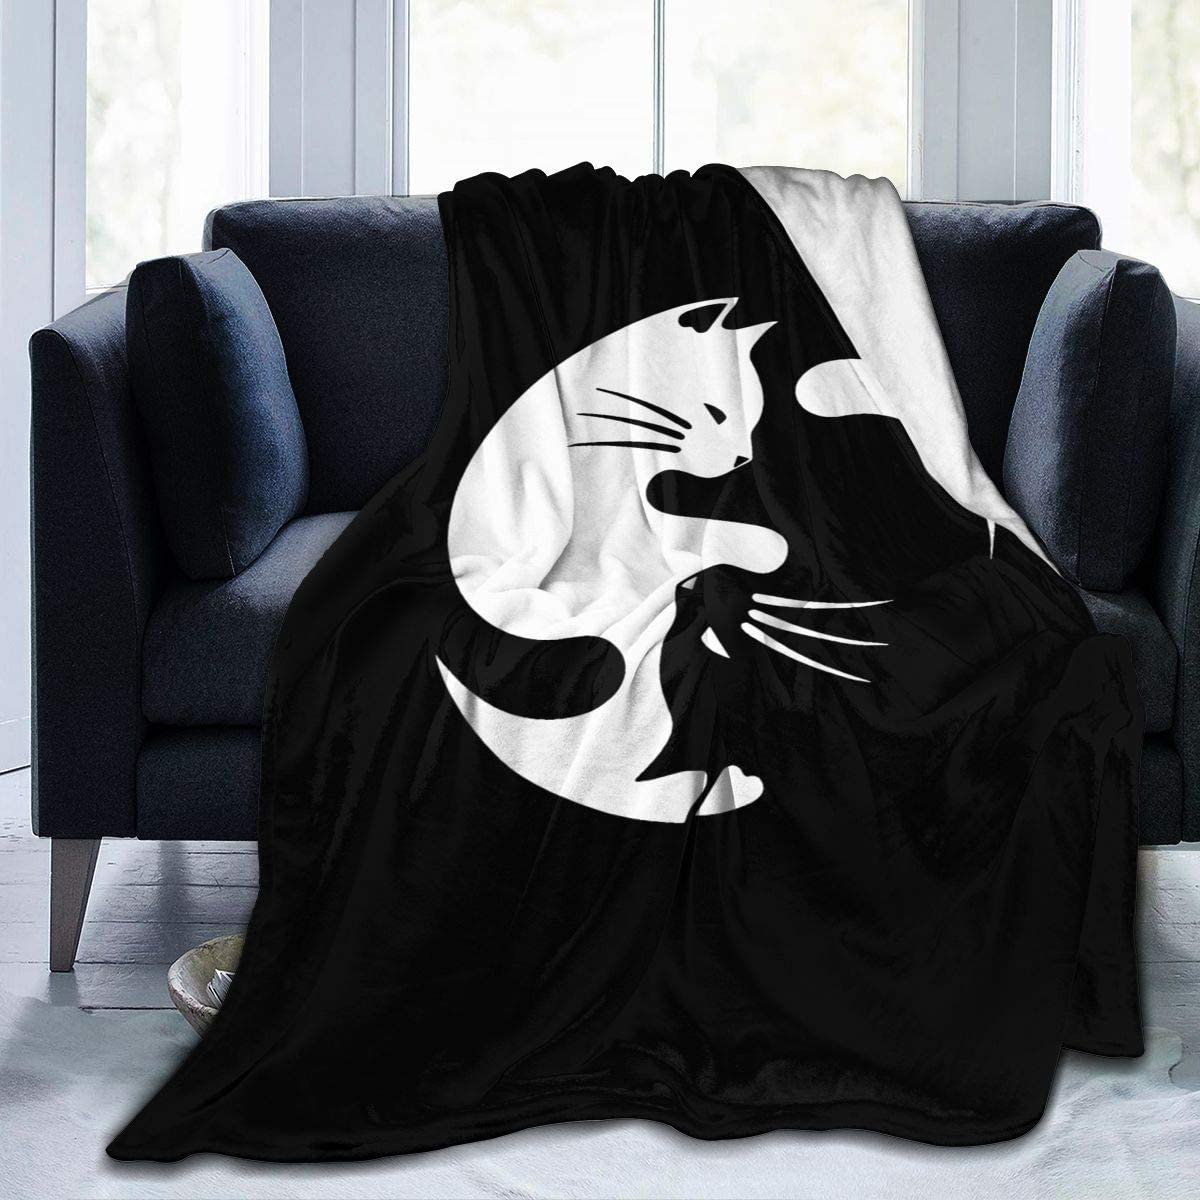 Shichangwei Cat Ying Yang Sherpa Bed Blanket Plush Throw Blanket Fleece Blanket for Bed and Couch